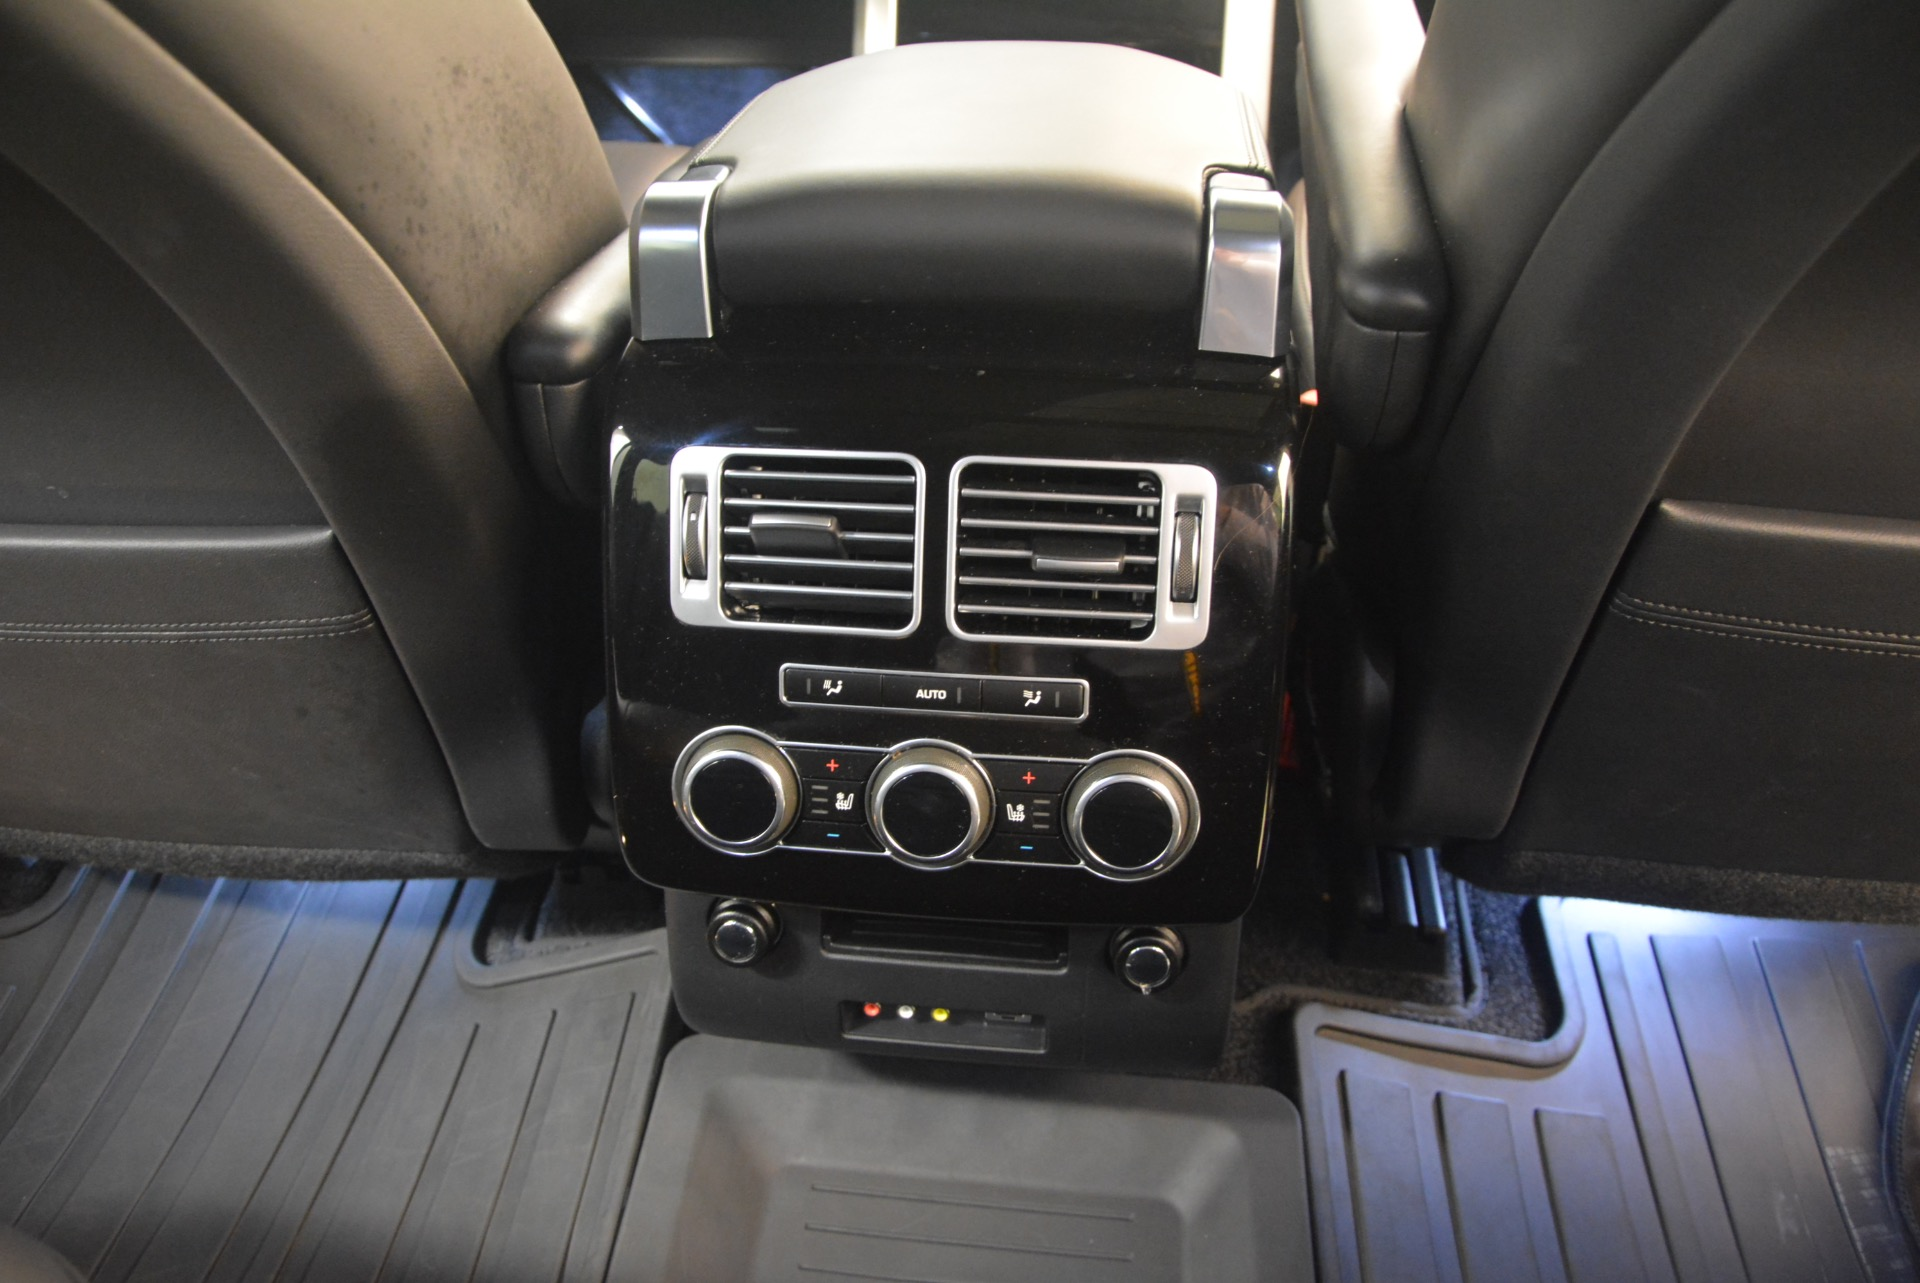 Used 2015 Land Rover Range Rover Supercharged For Sale In Greenwich, CT 1292_p37